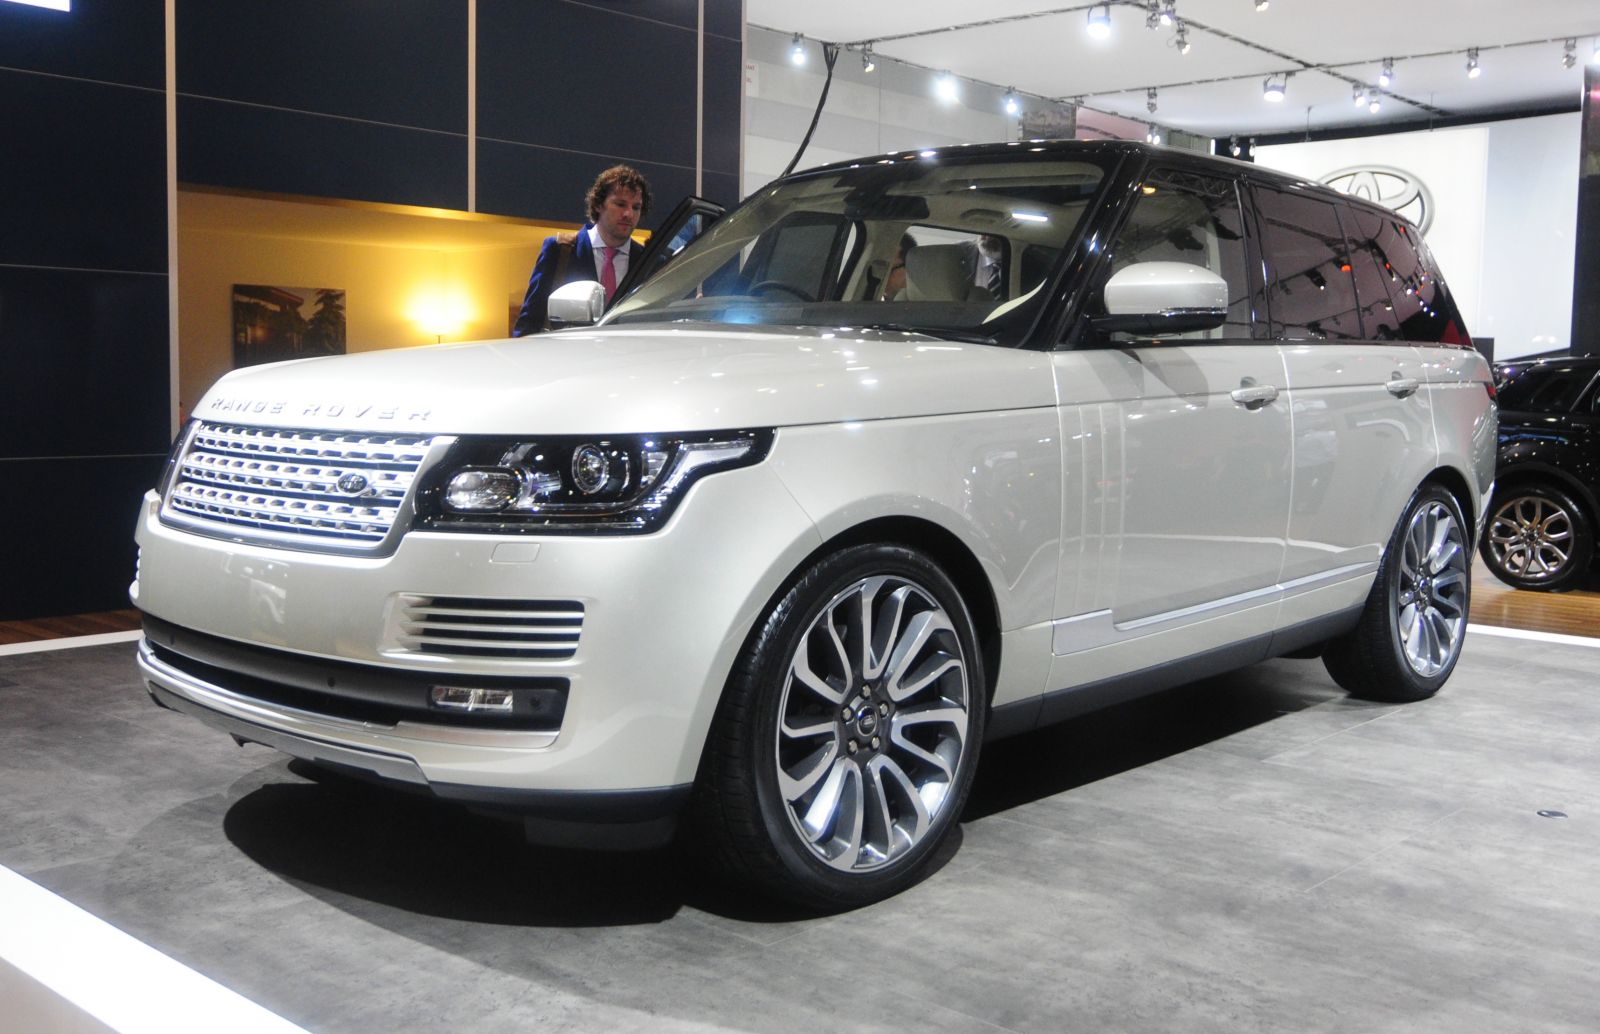 new range rover best luxury car 2012 automotive car manufacture. Black Bedroom Furniture Sets. Home Design Ideas